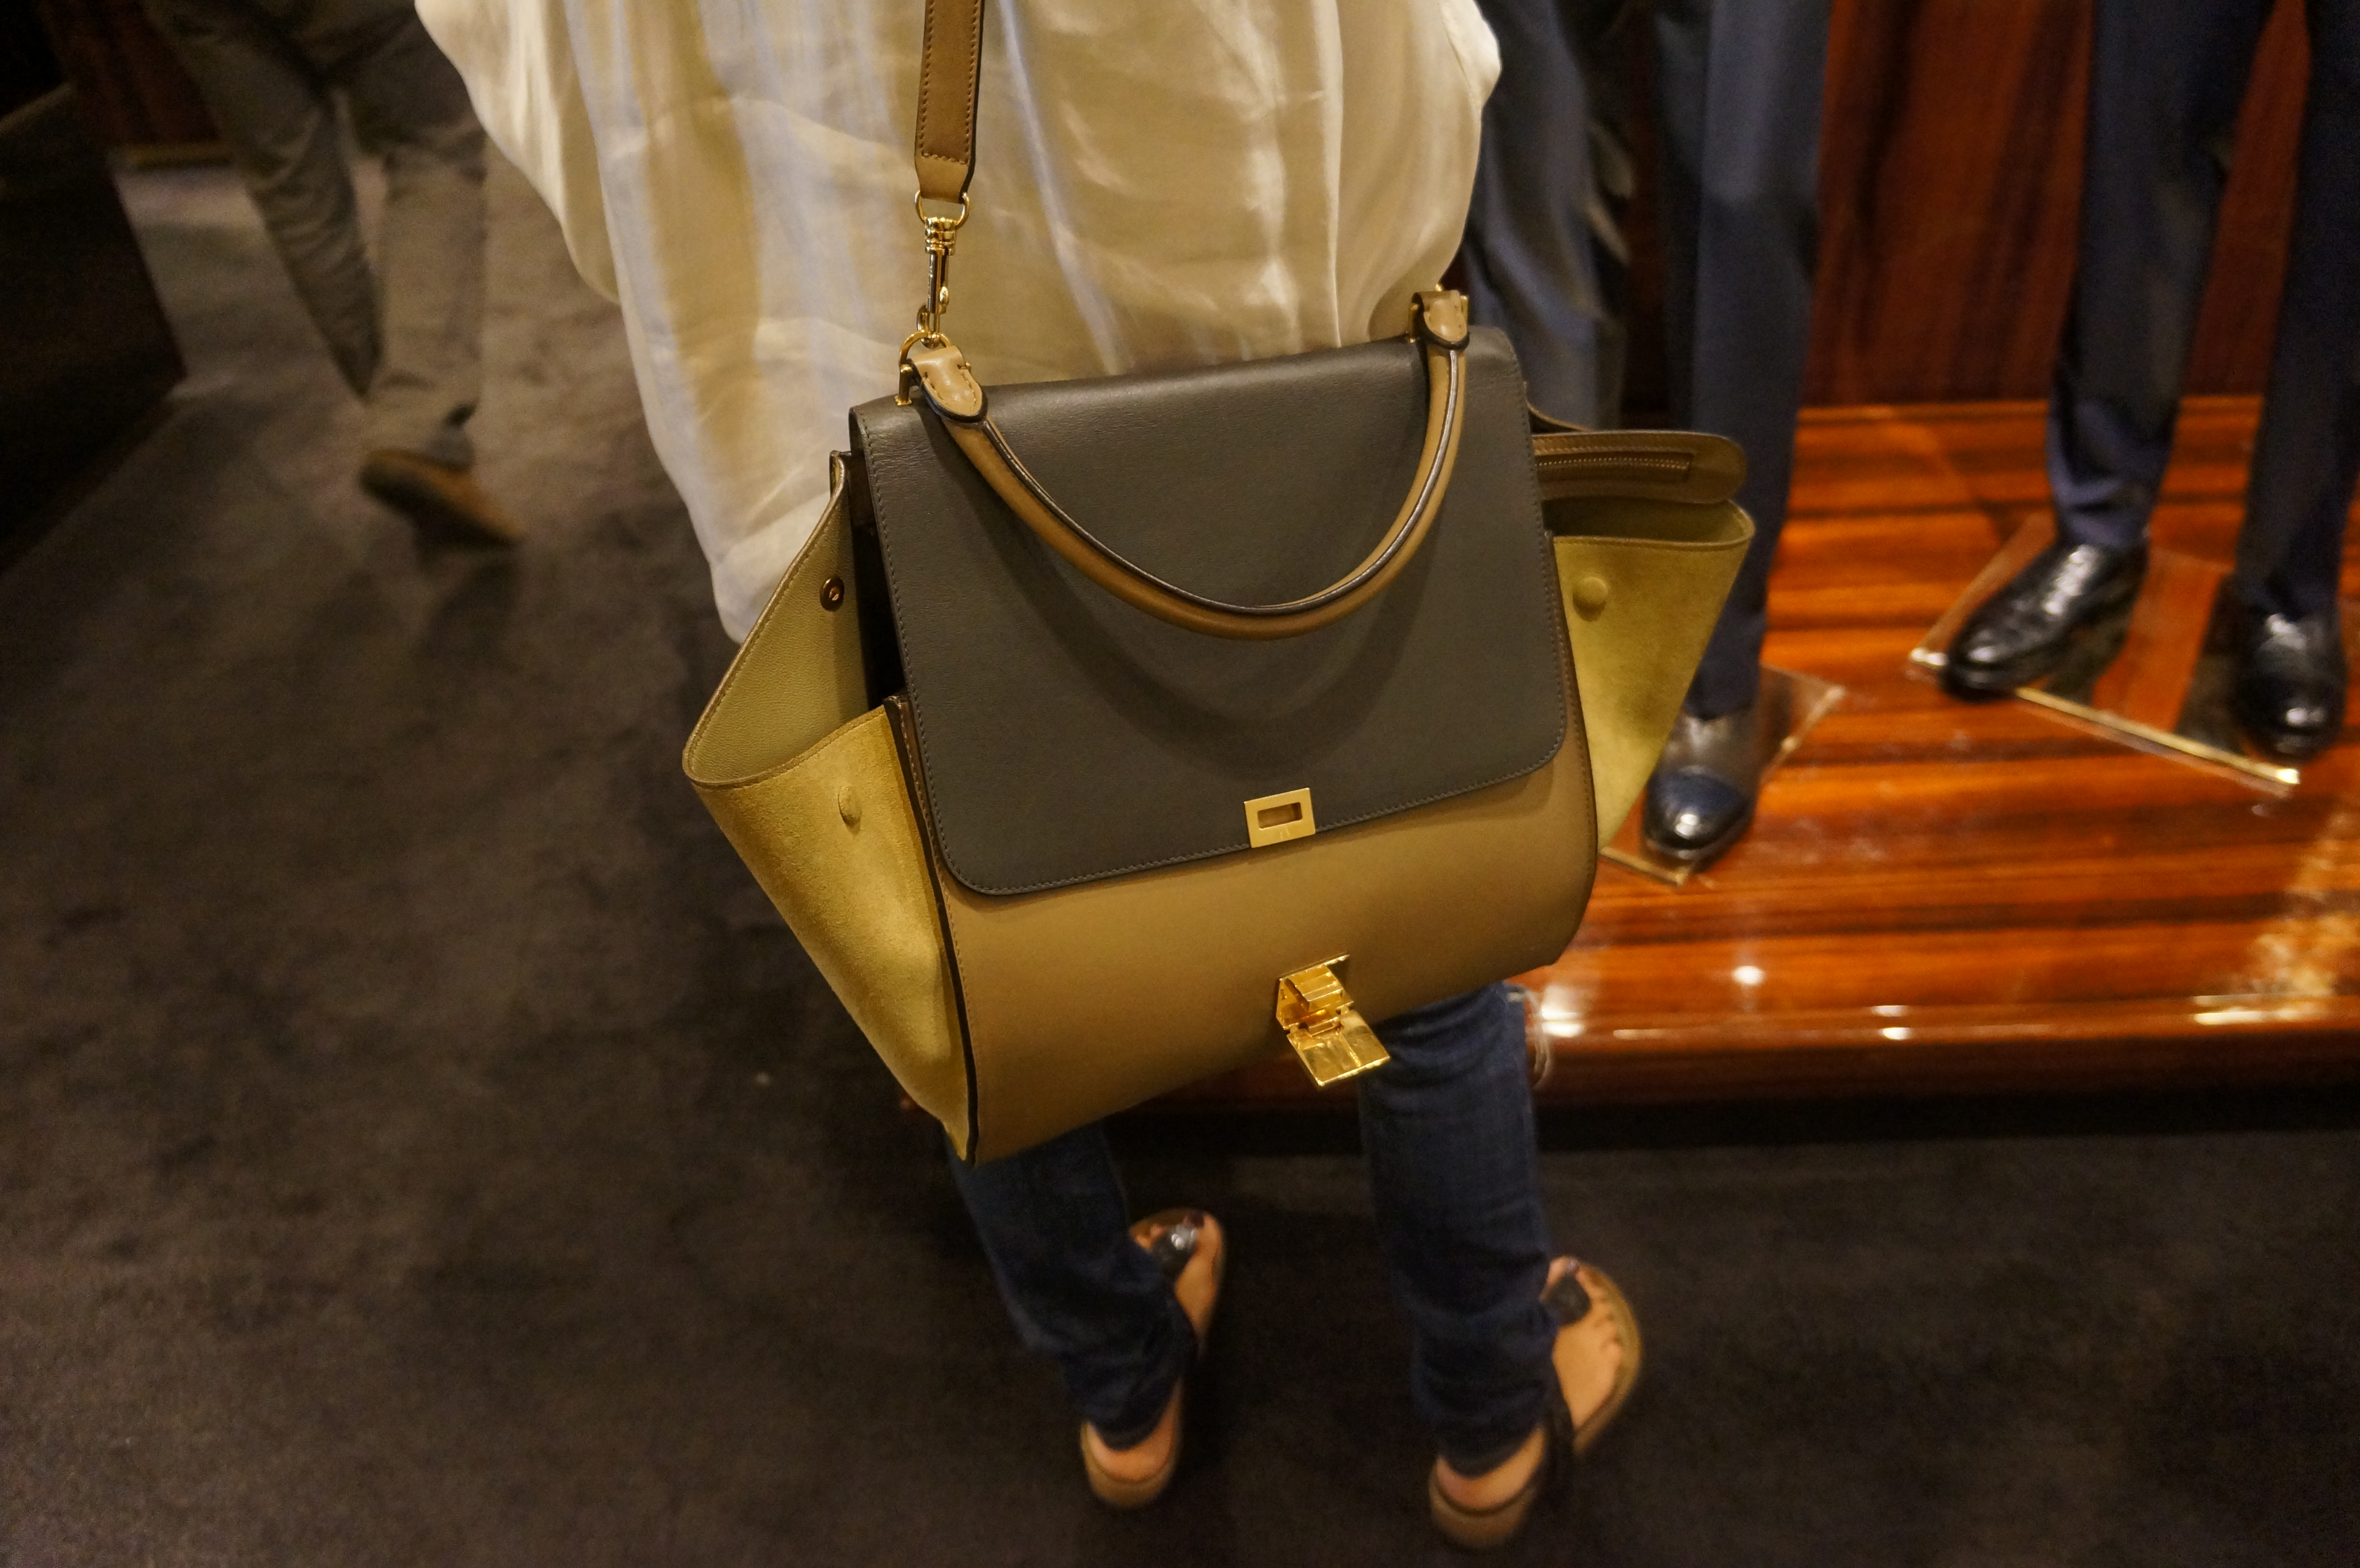 NYC: Street Style (Bags and others) | Design \u0026amp; Culture by Ed